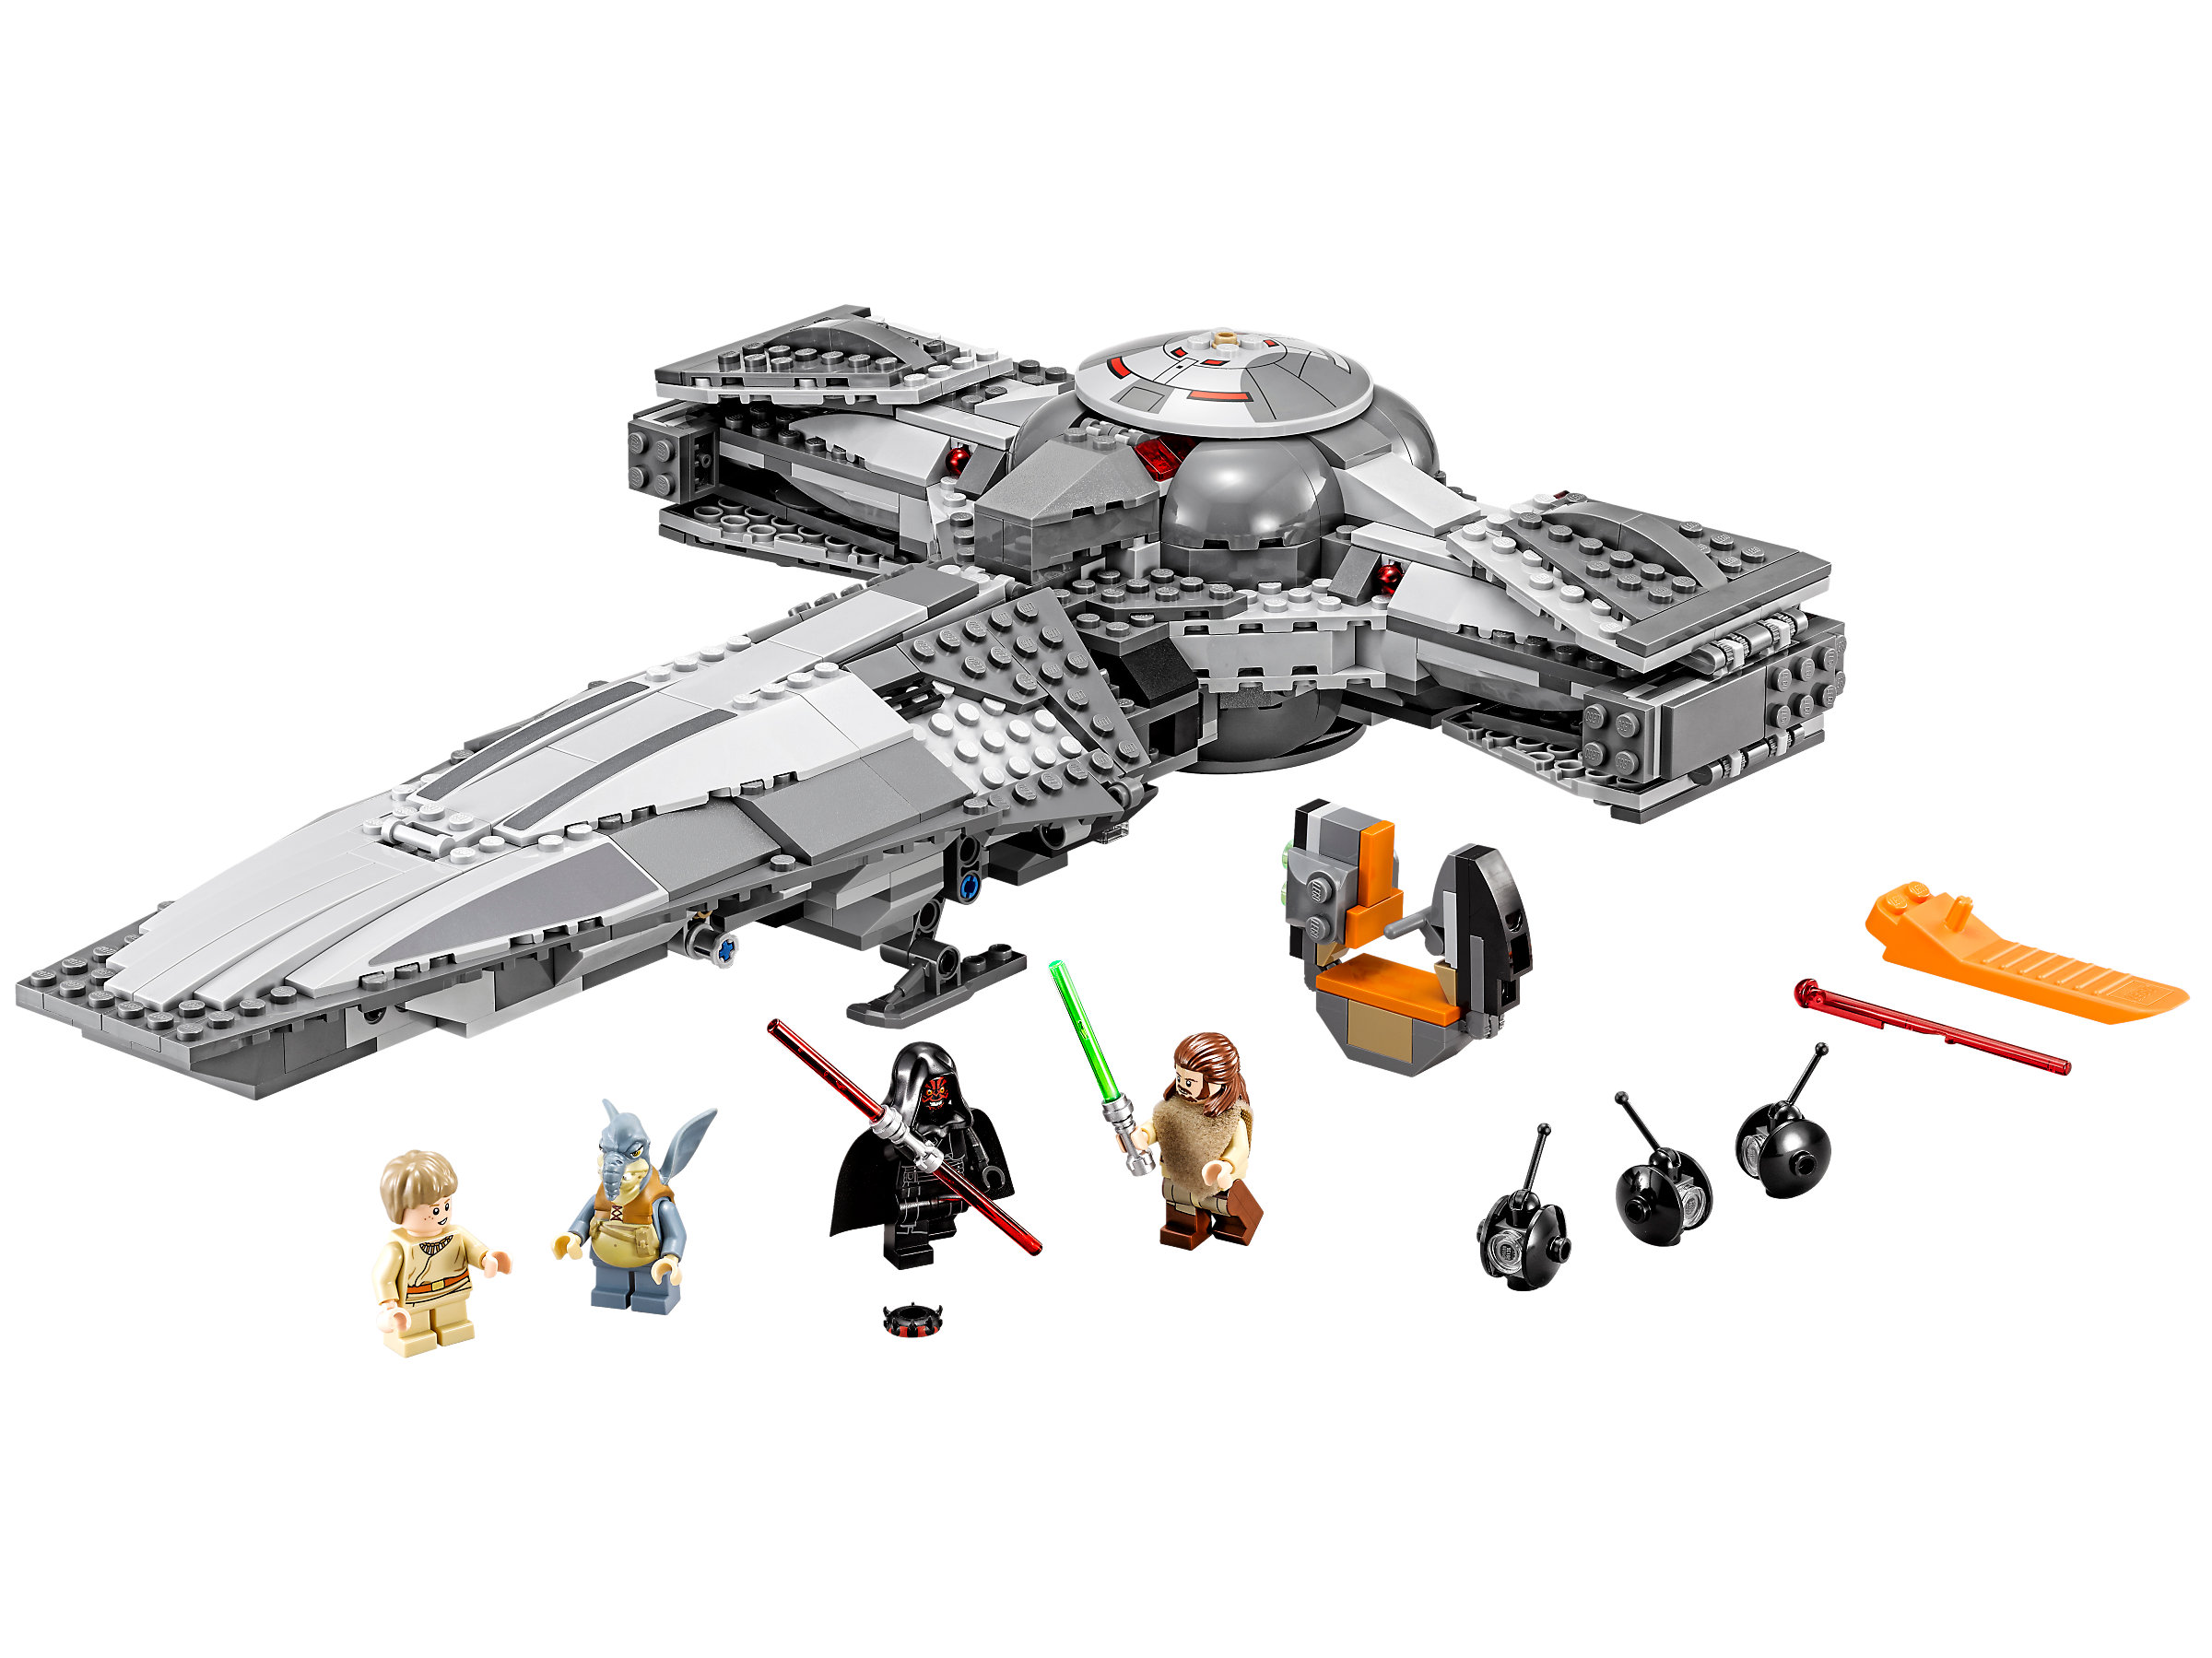 Lego Star Wars 75096 Sith Infiltrator NEW Retired